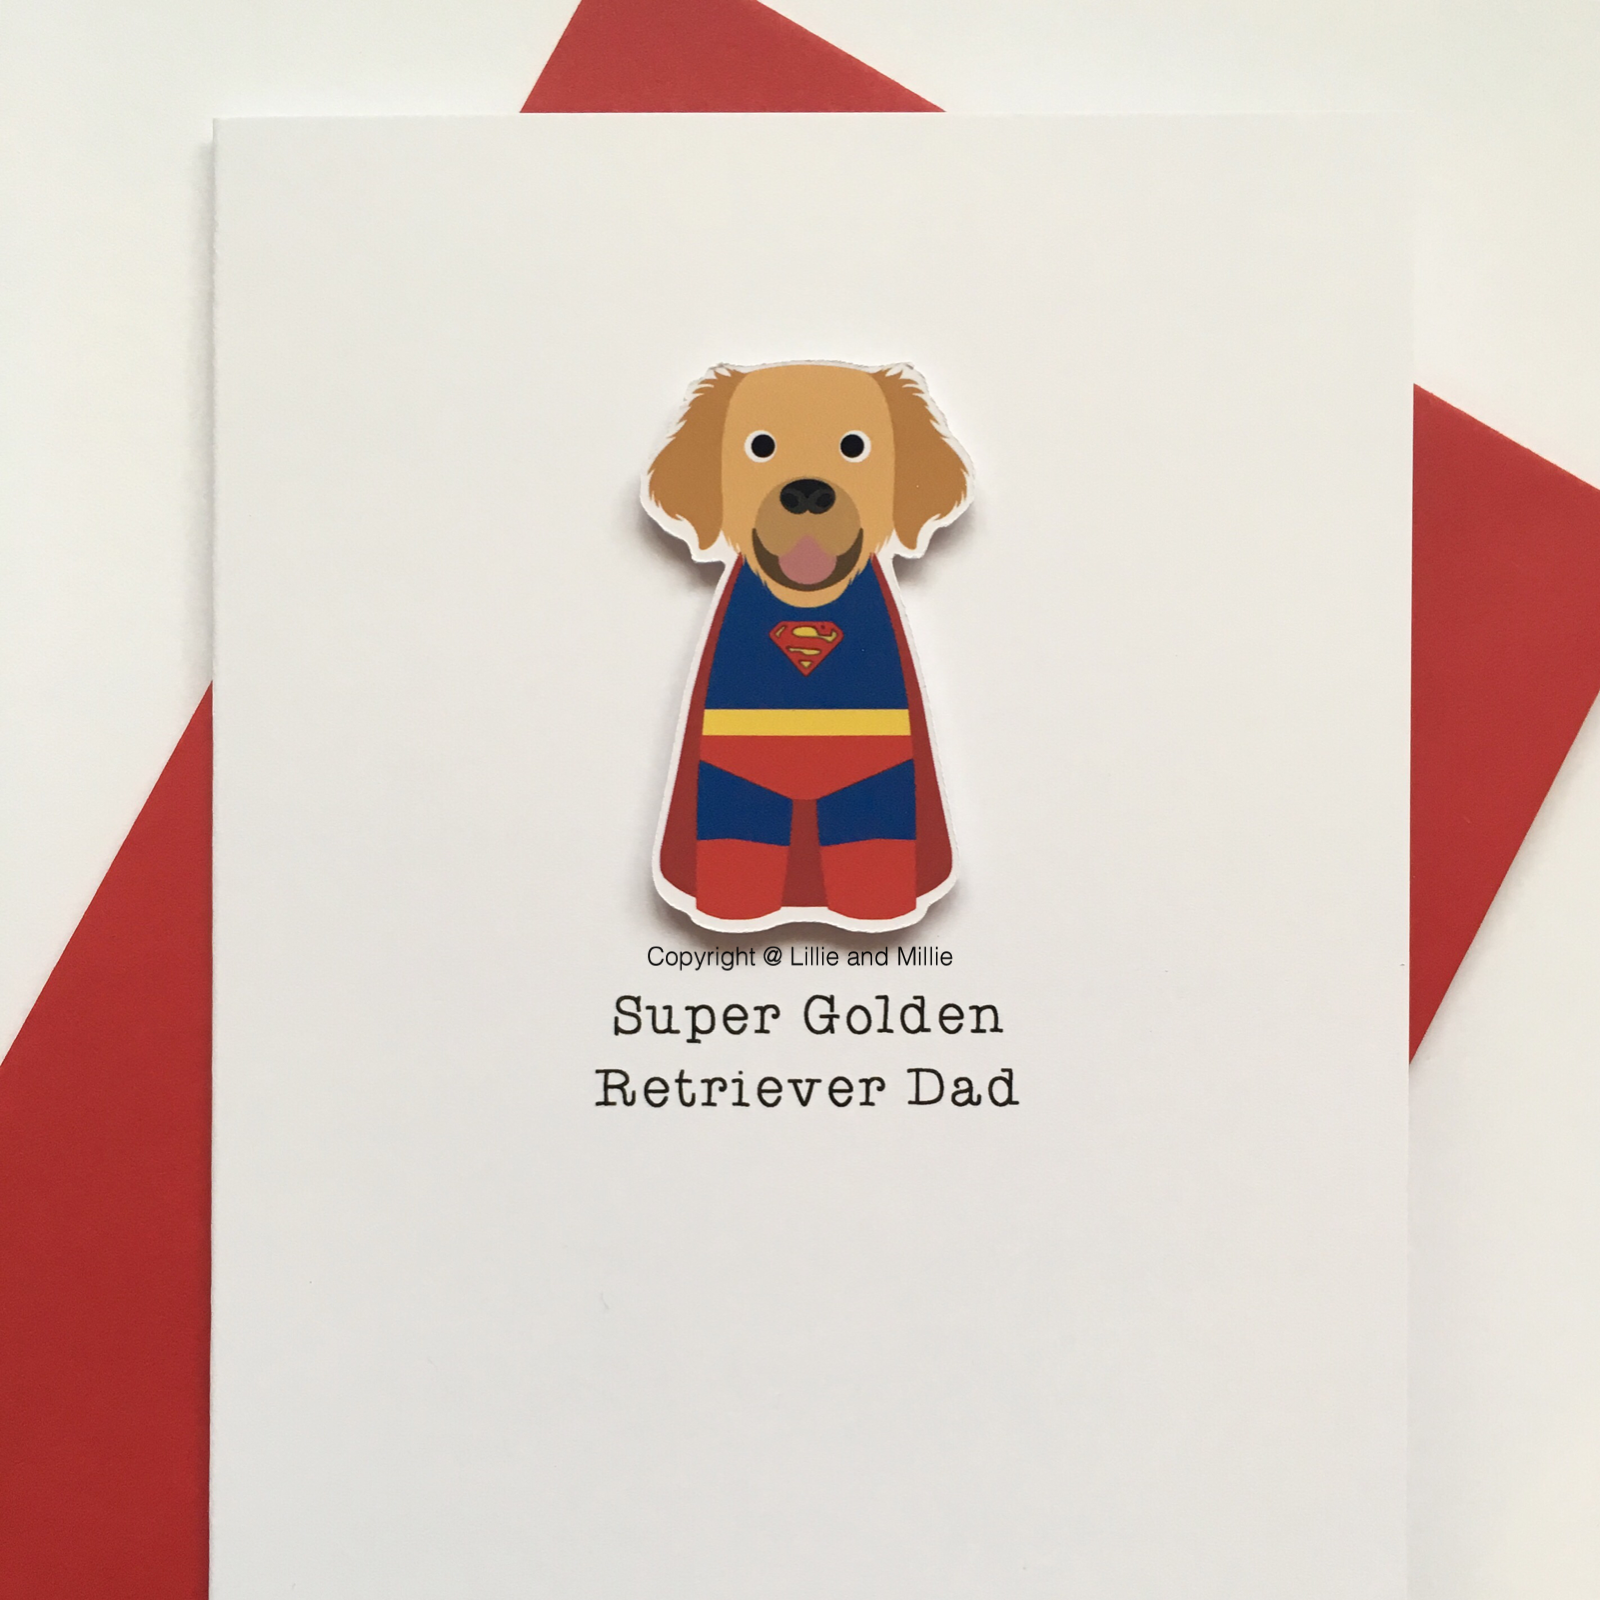 Cute and Cuddly Super Golden Retriever Dad Card